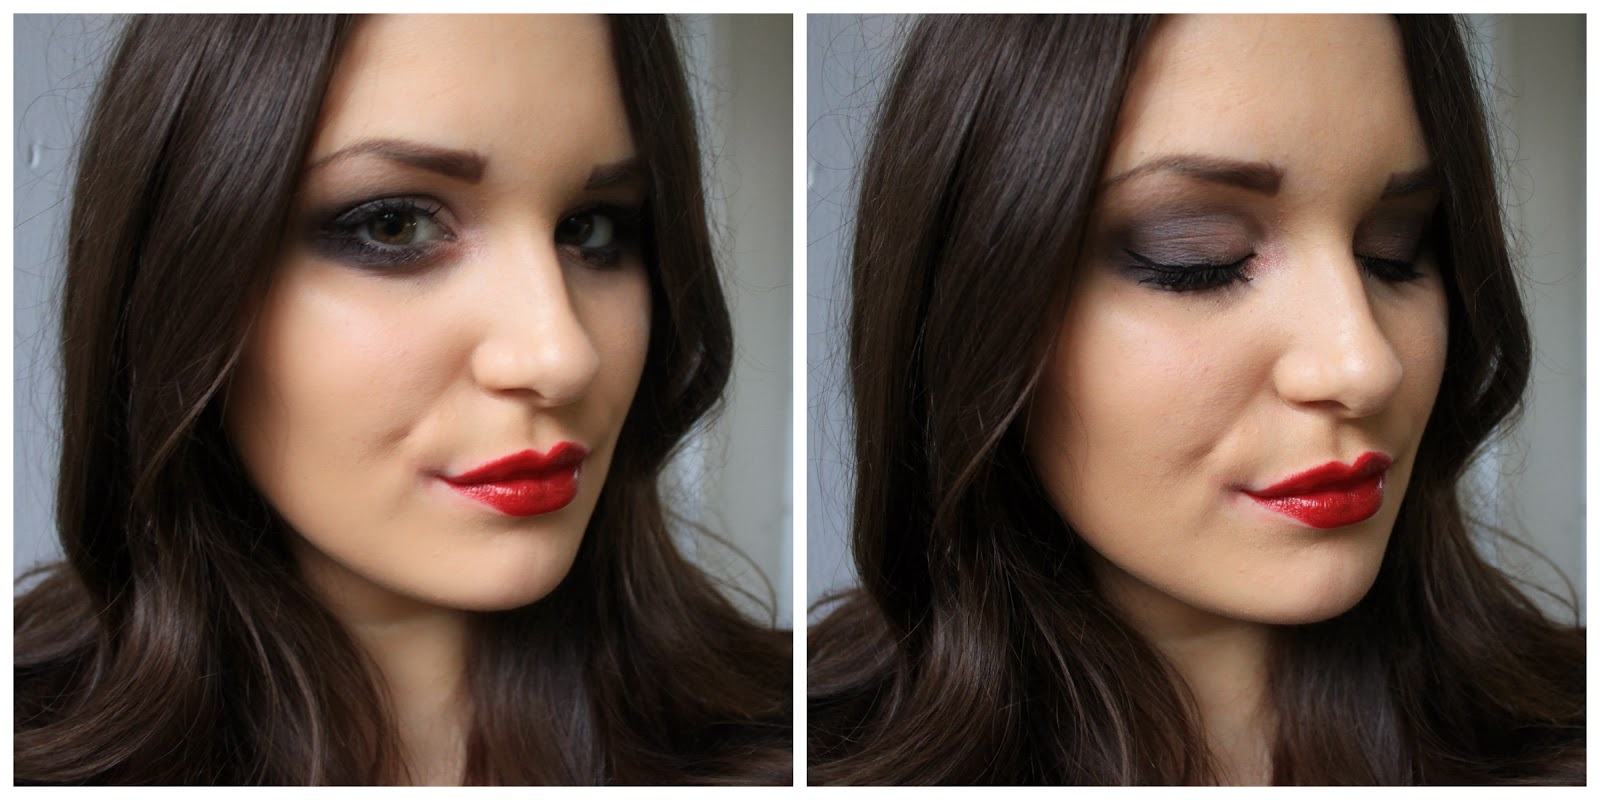 Beauty blogger Mash Elle shares a dramatic smokey eye using Urban Decay's Naked 3 palette